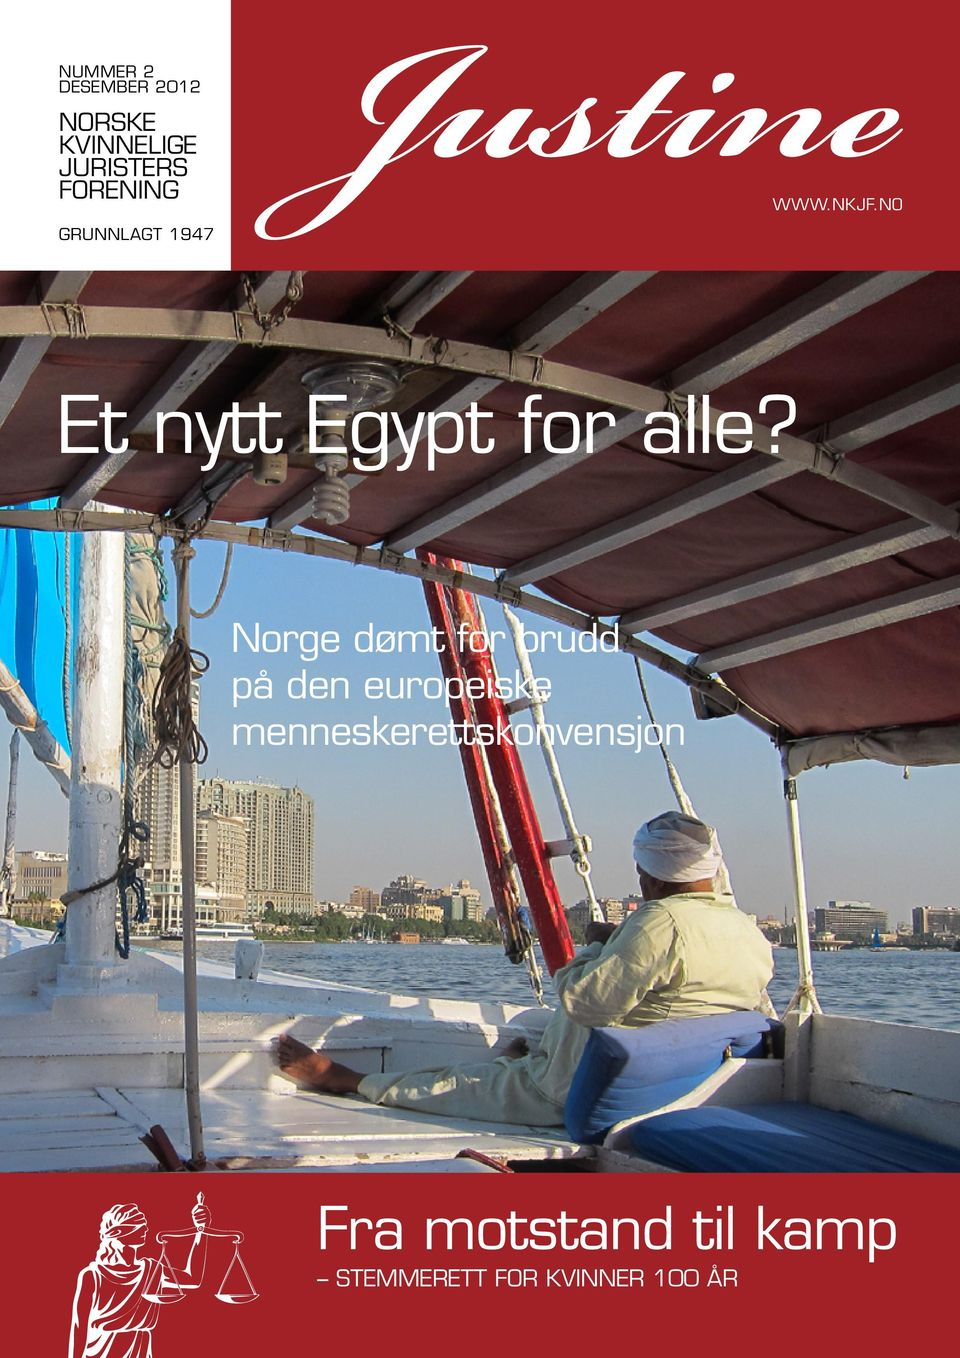 NO Et nytt Egypt for alle?